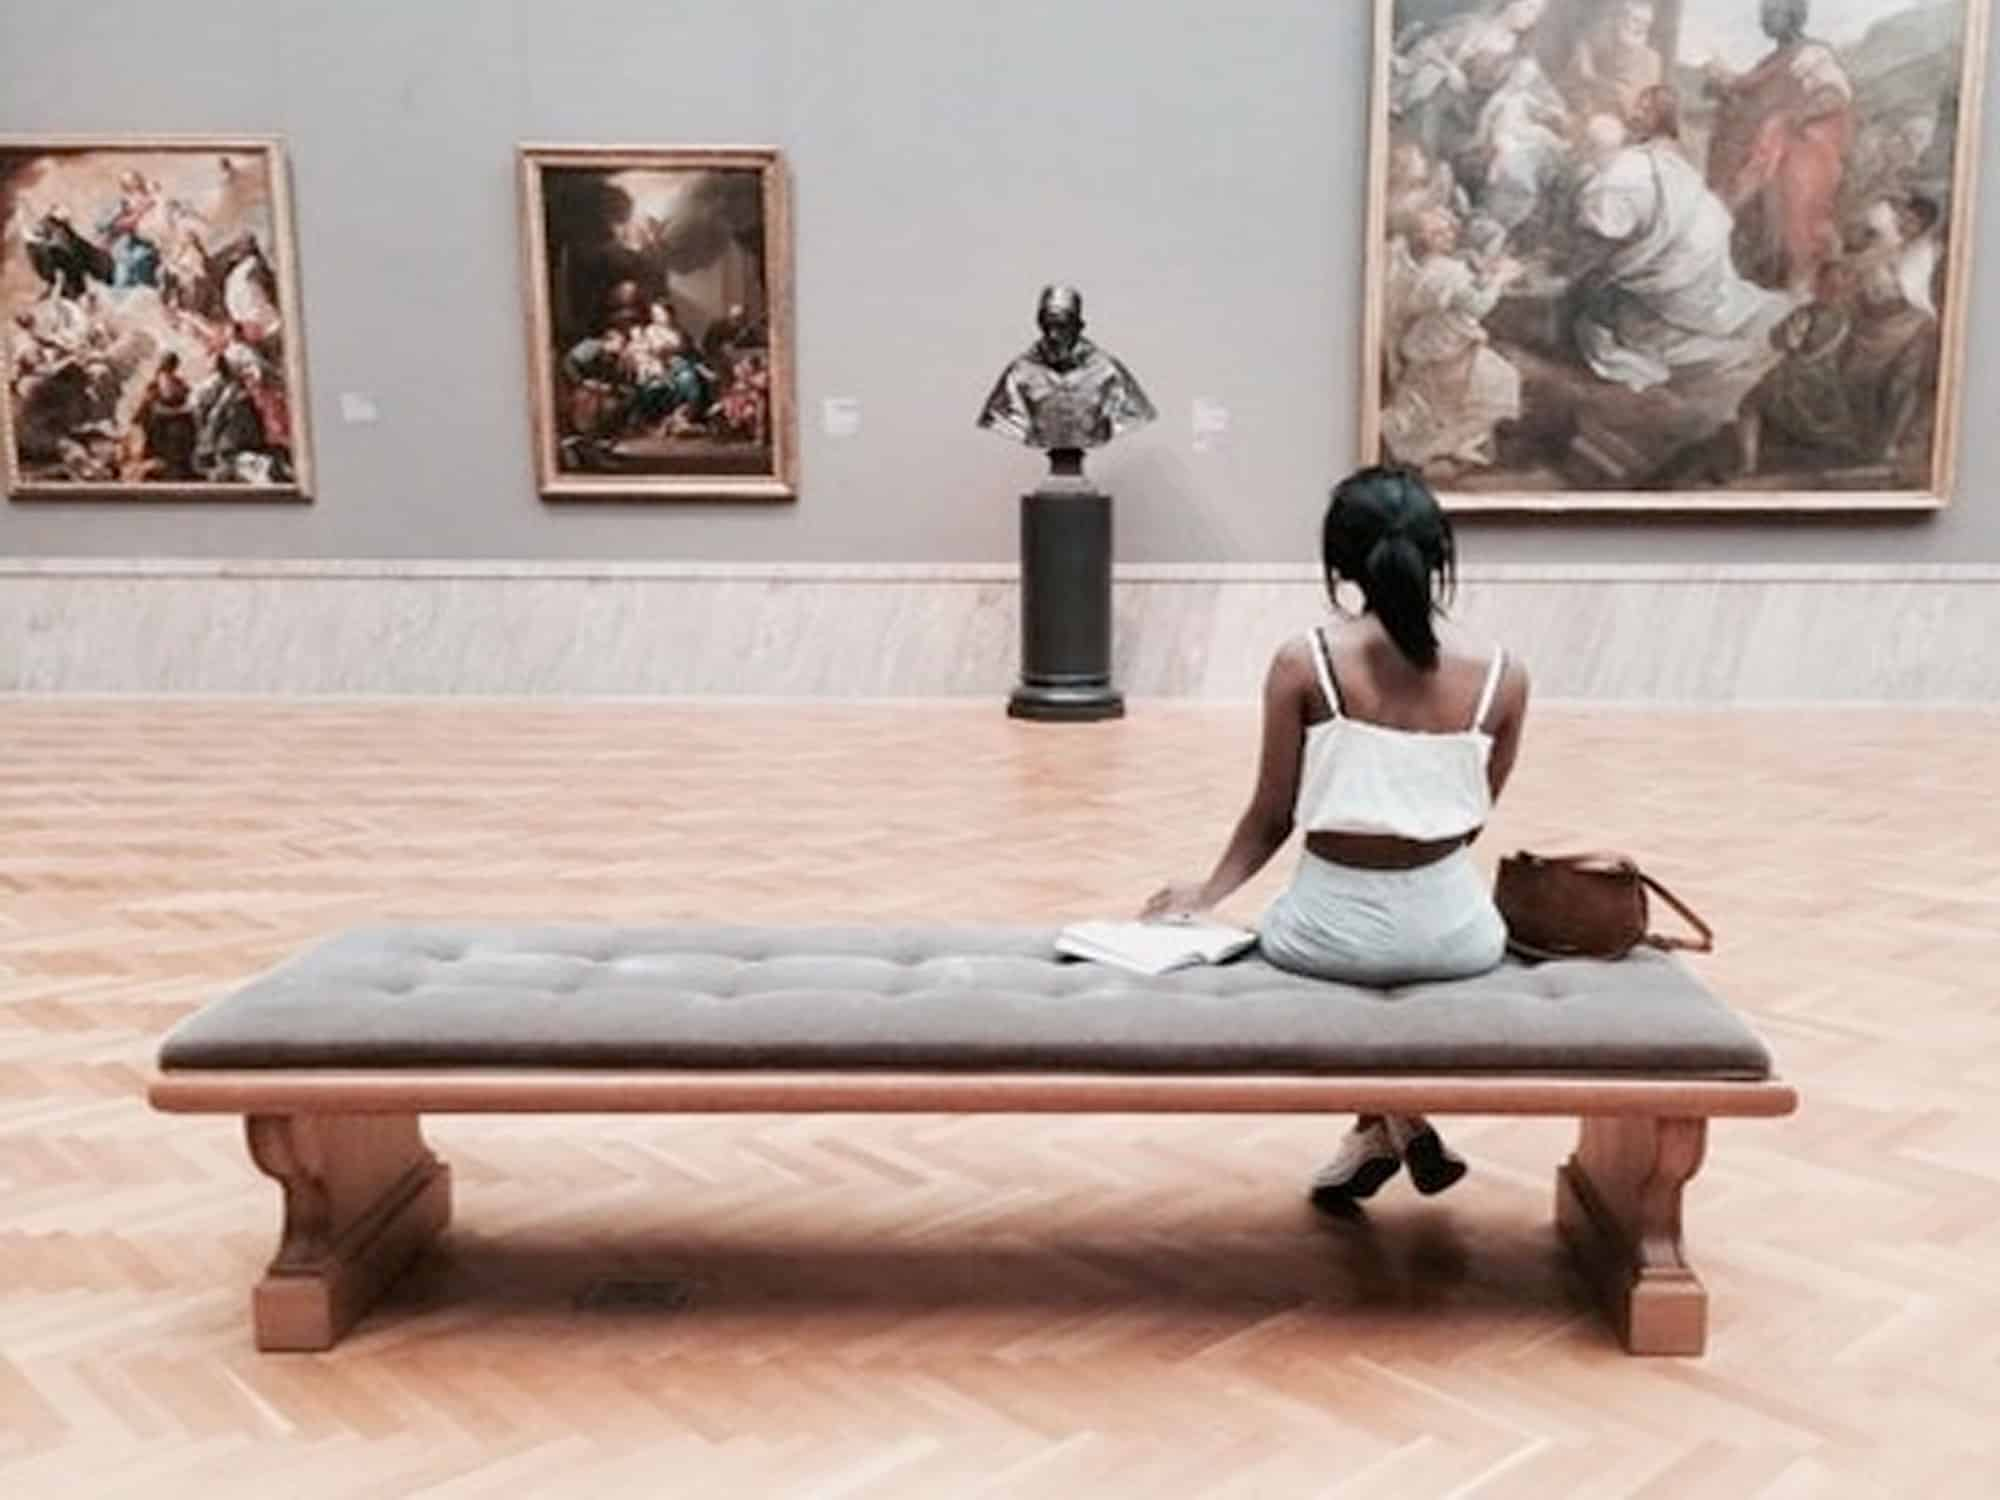 San Francisco is home to many forms of entertainment, but art galleries are some of the more sophisticated forms. Here are 10 art galleries in San Francisco that I think would make great features on your Insta story, while also allowing for intellectual discussion or thought.